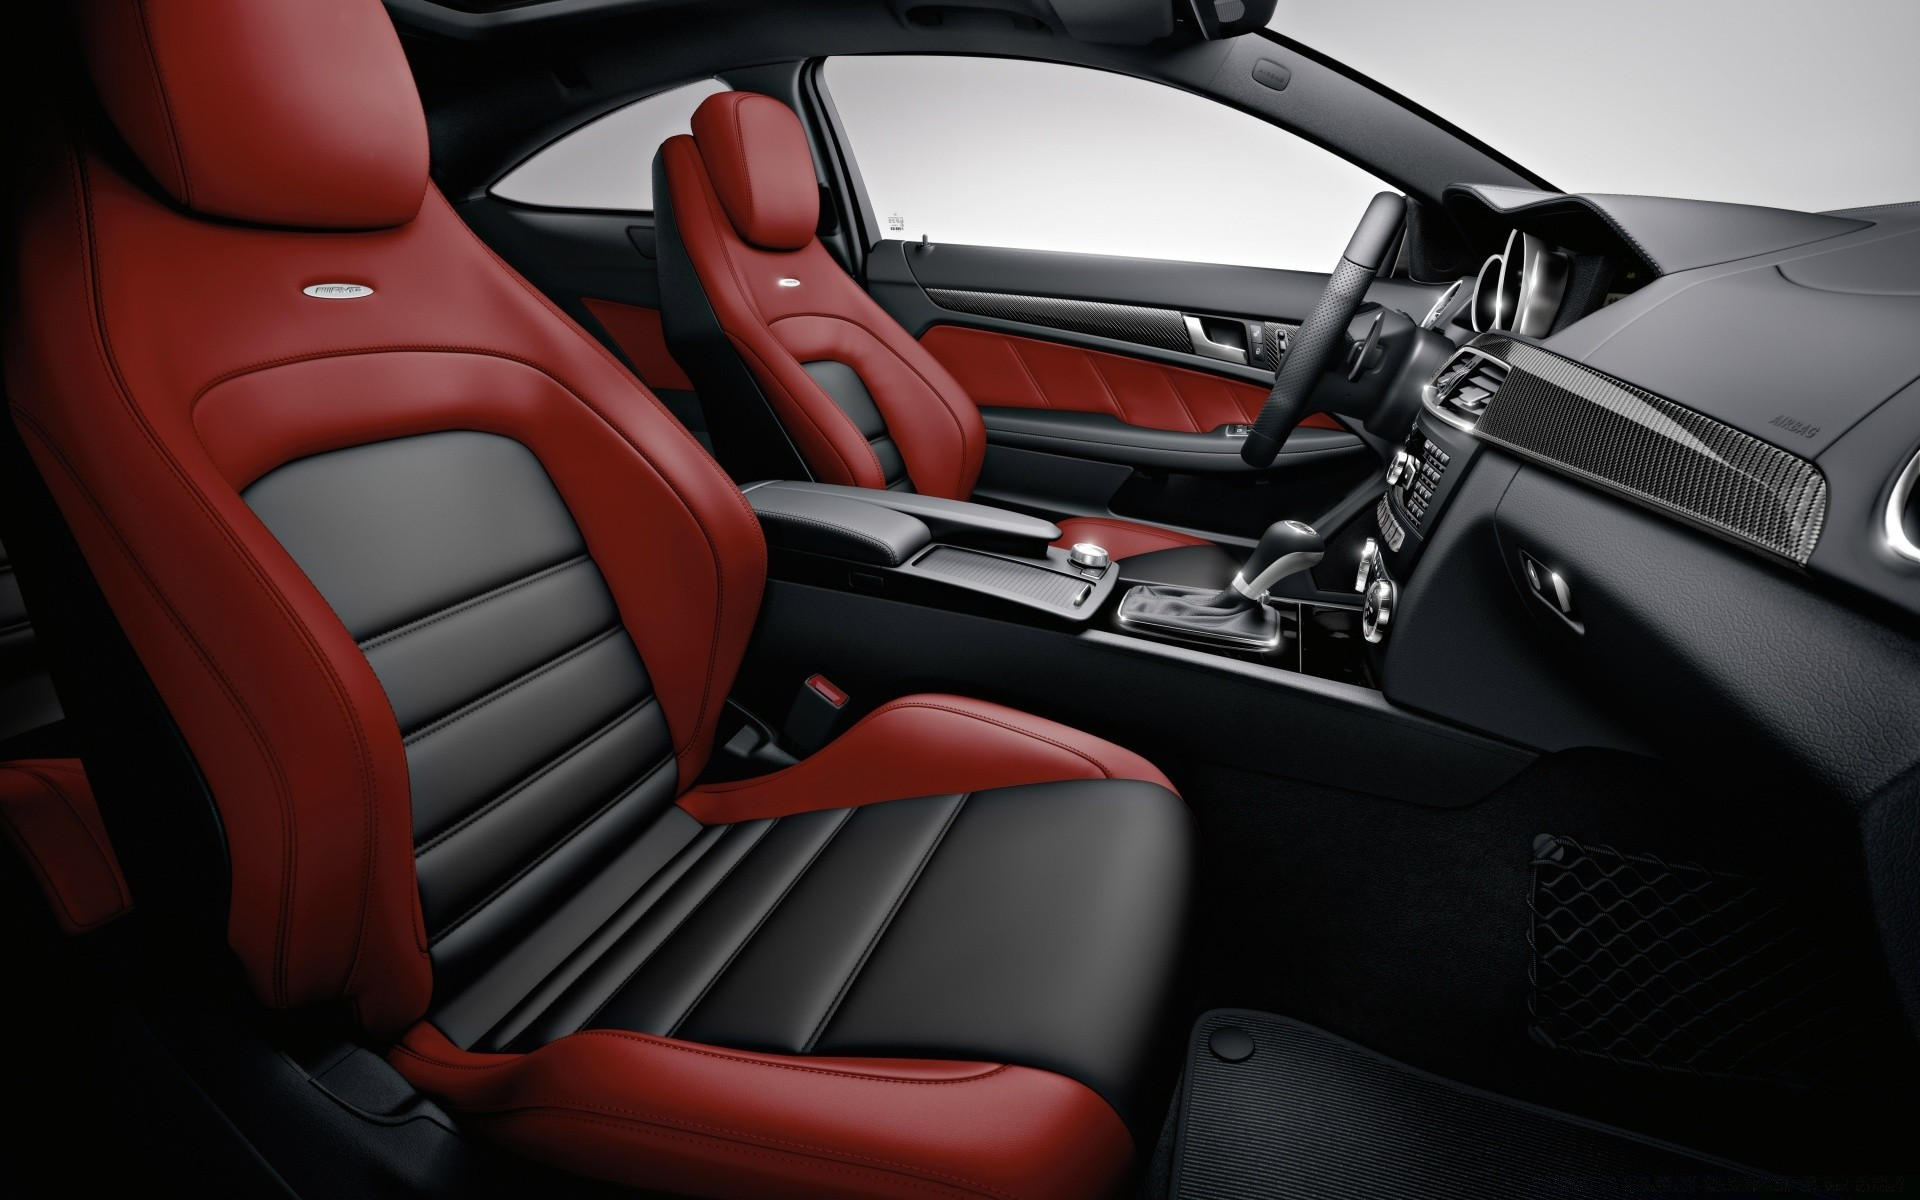 2012 Mercedes Benz C63 AMG Car Interior. Android wallpapers for free.